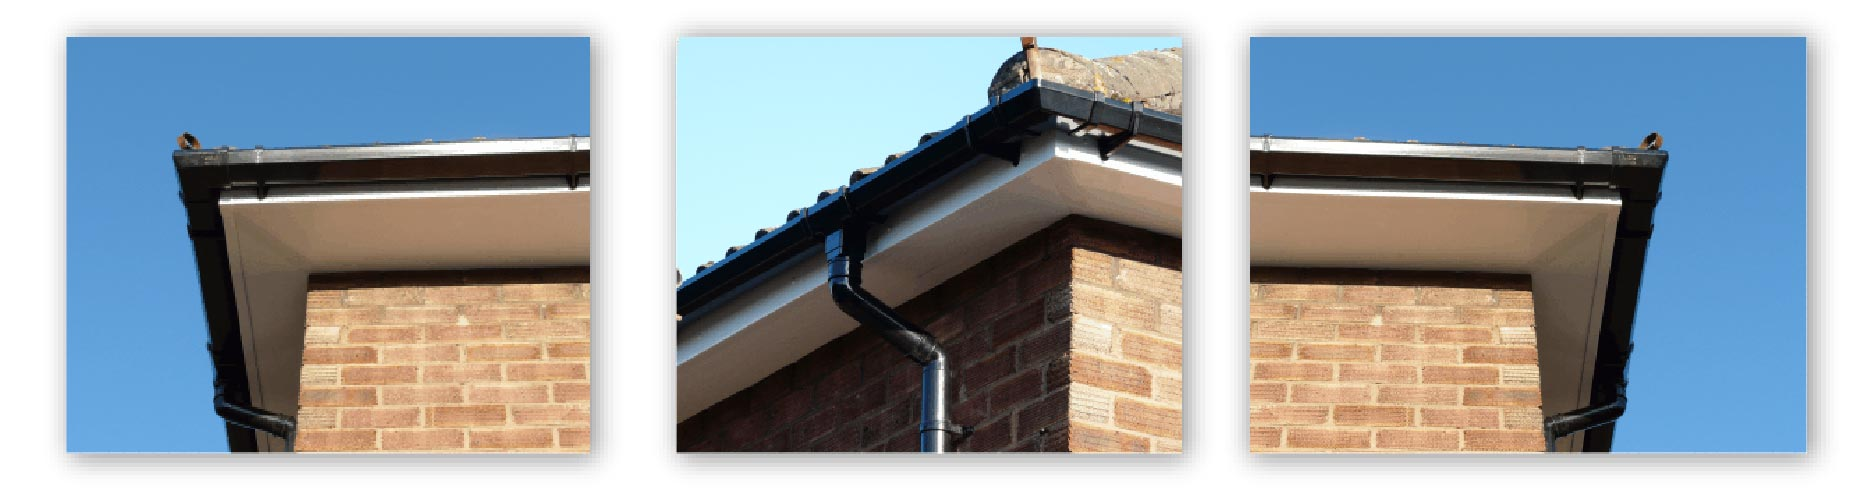 Reline guttering carry out upvc gutter replacement and repairs in